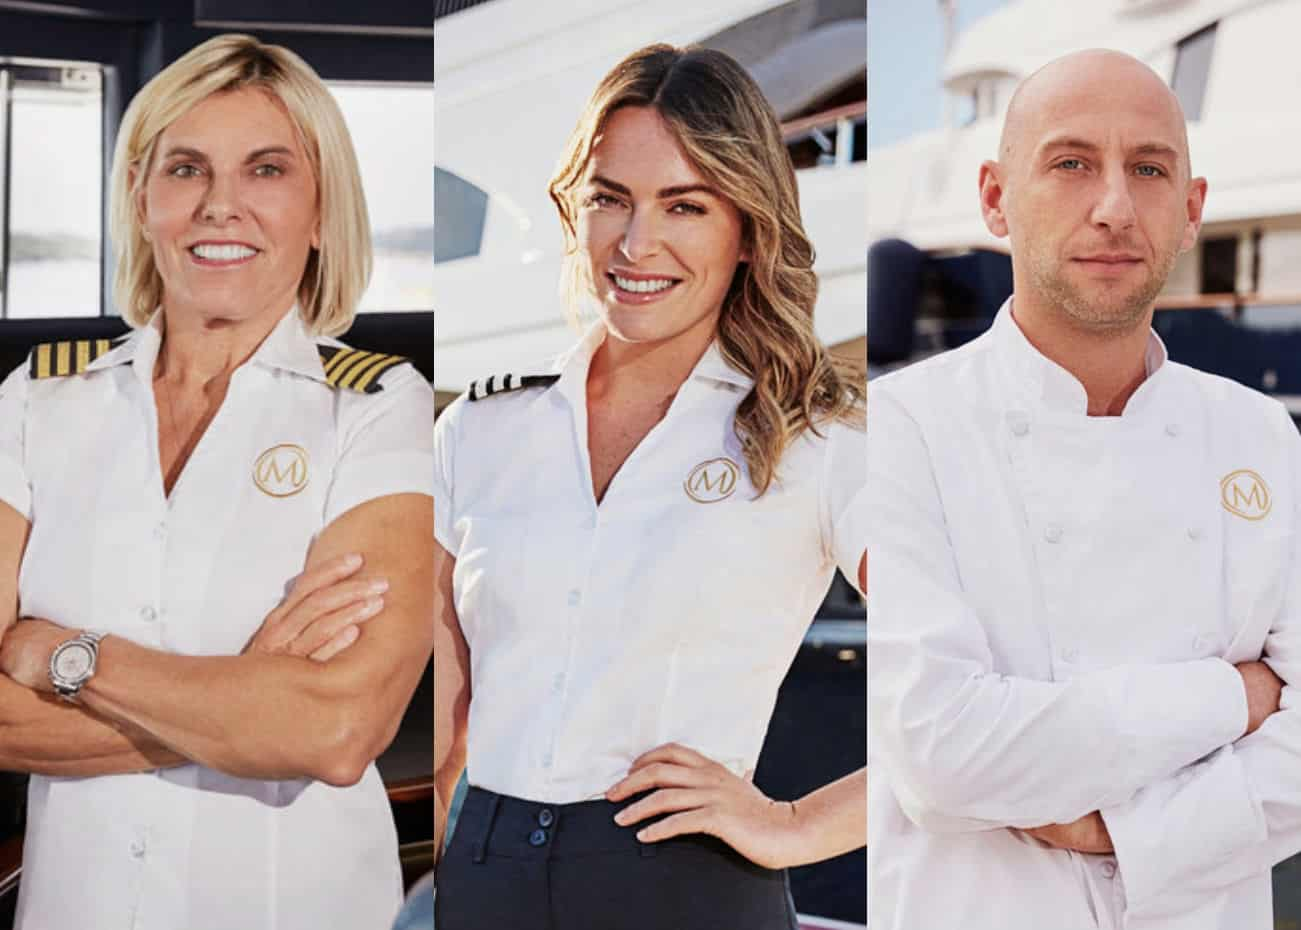 Captain Sandy Yawn and Katie Flood Shade Chef Mathew Shea and Dish on Their Below Deck Med Costars While Teasing Drama Ahead